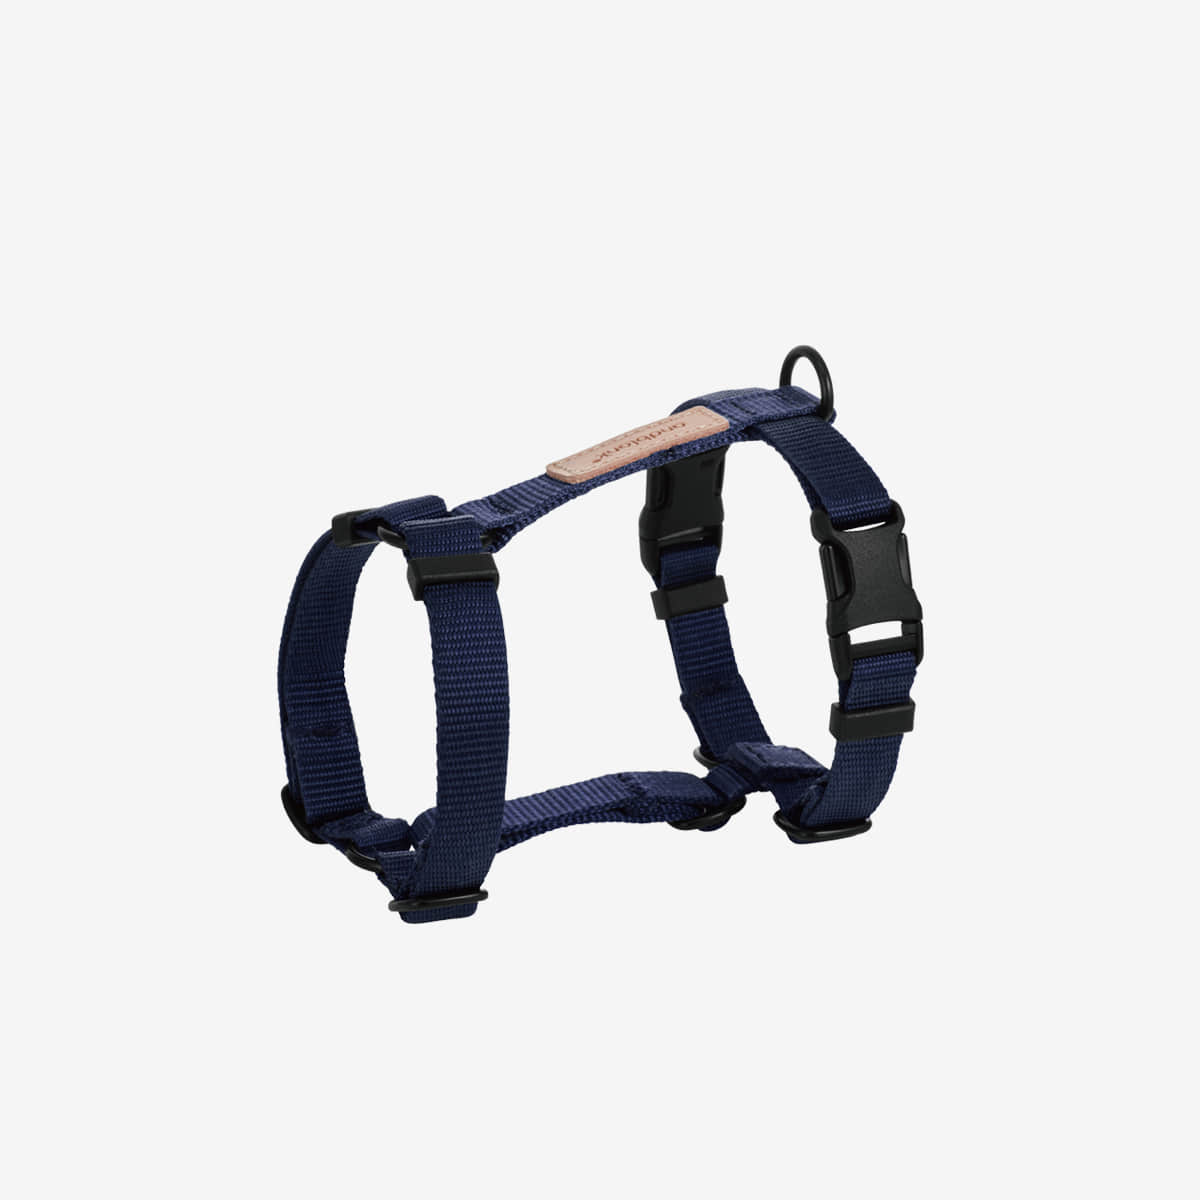 앤블랭크 harness : navy